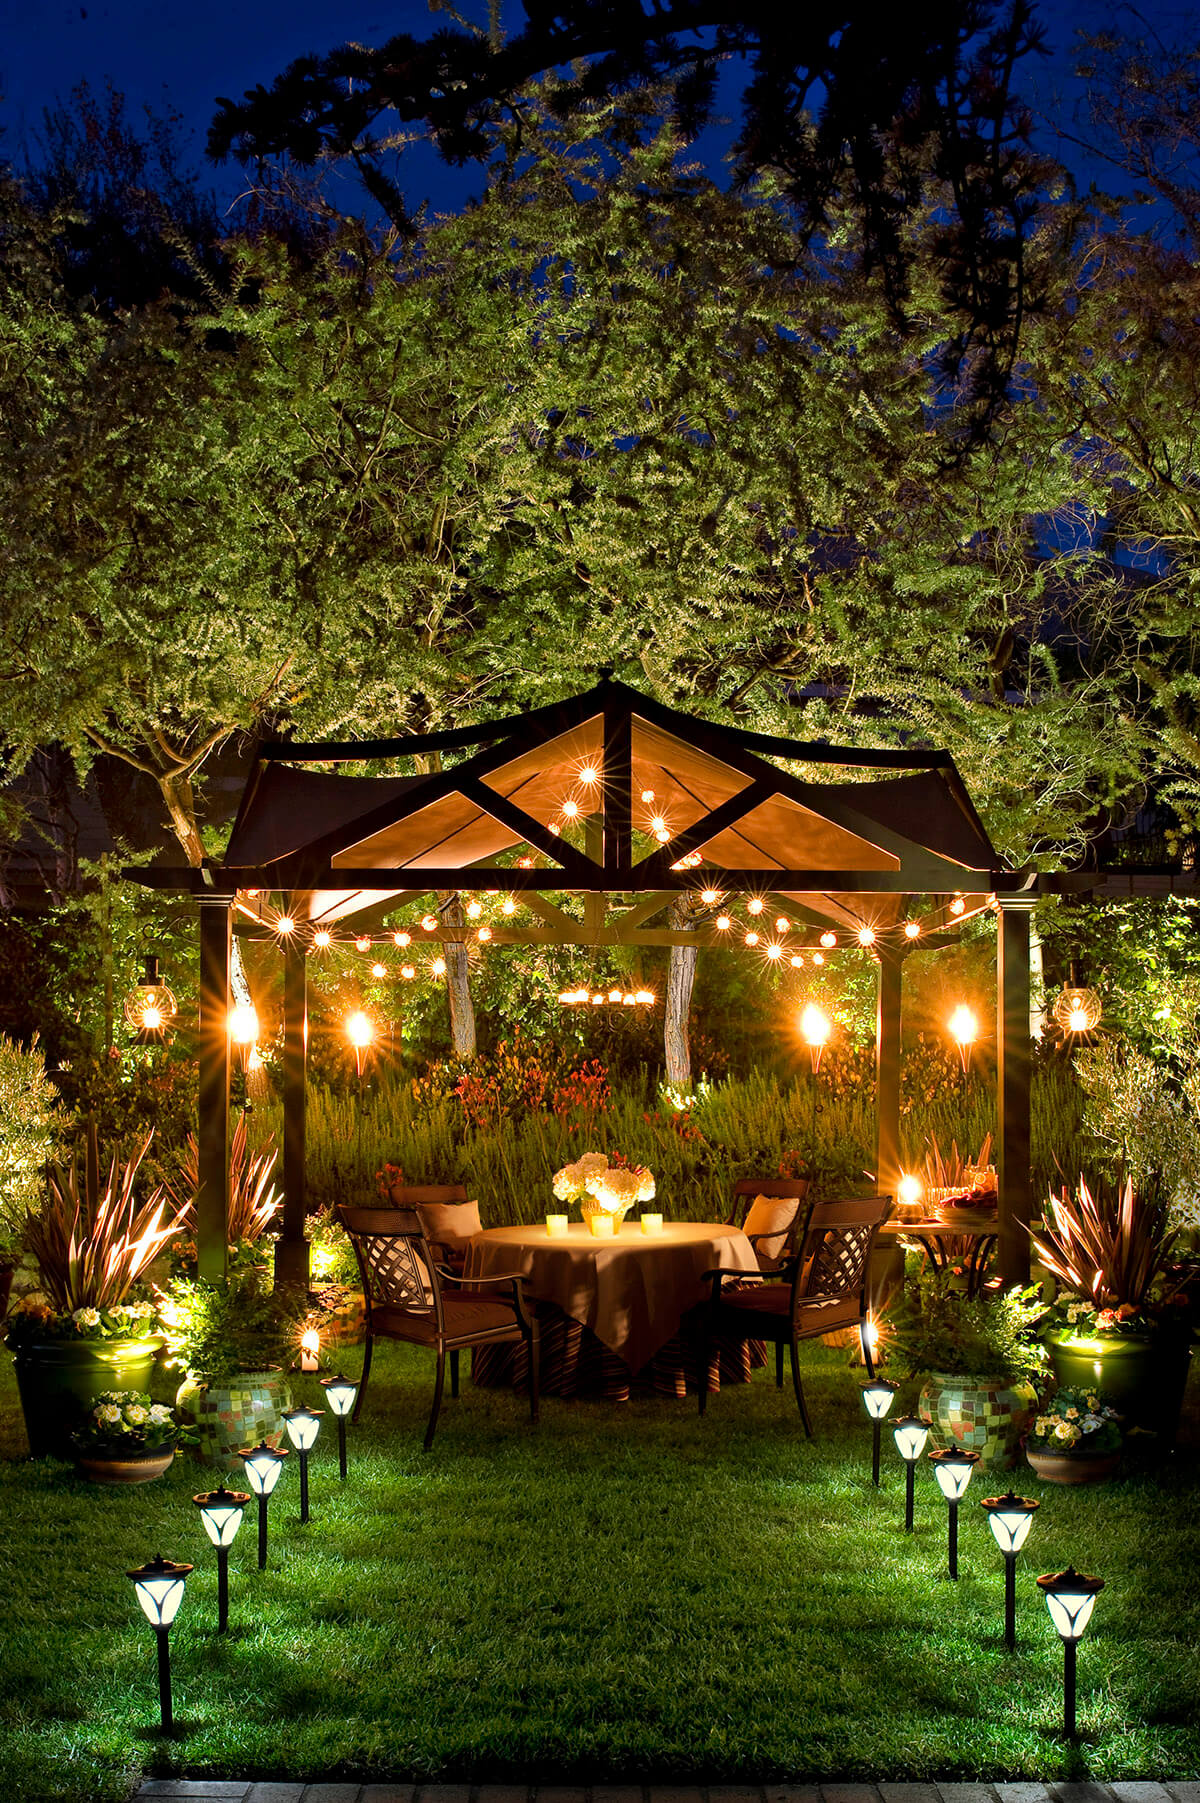 party lighting ideas. Elegant Well-Lit Backyard Dinner Party Pergola Lighting Ideas